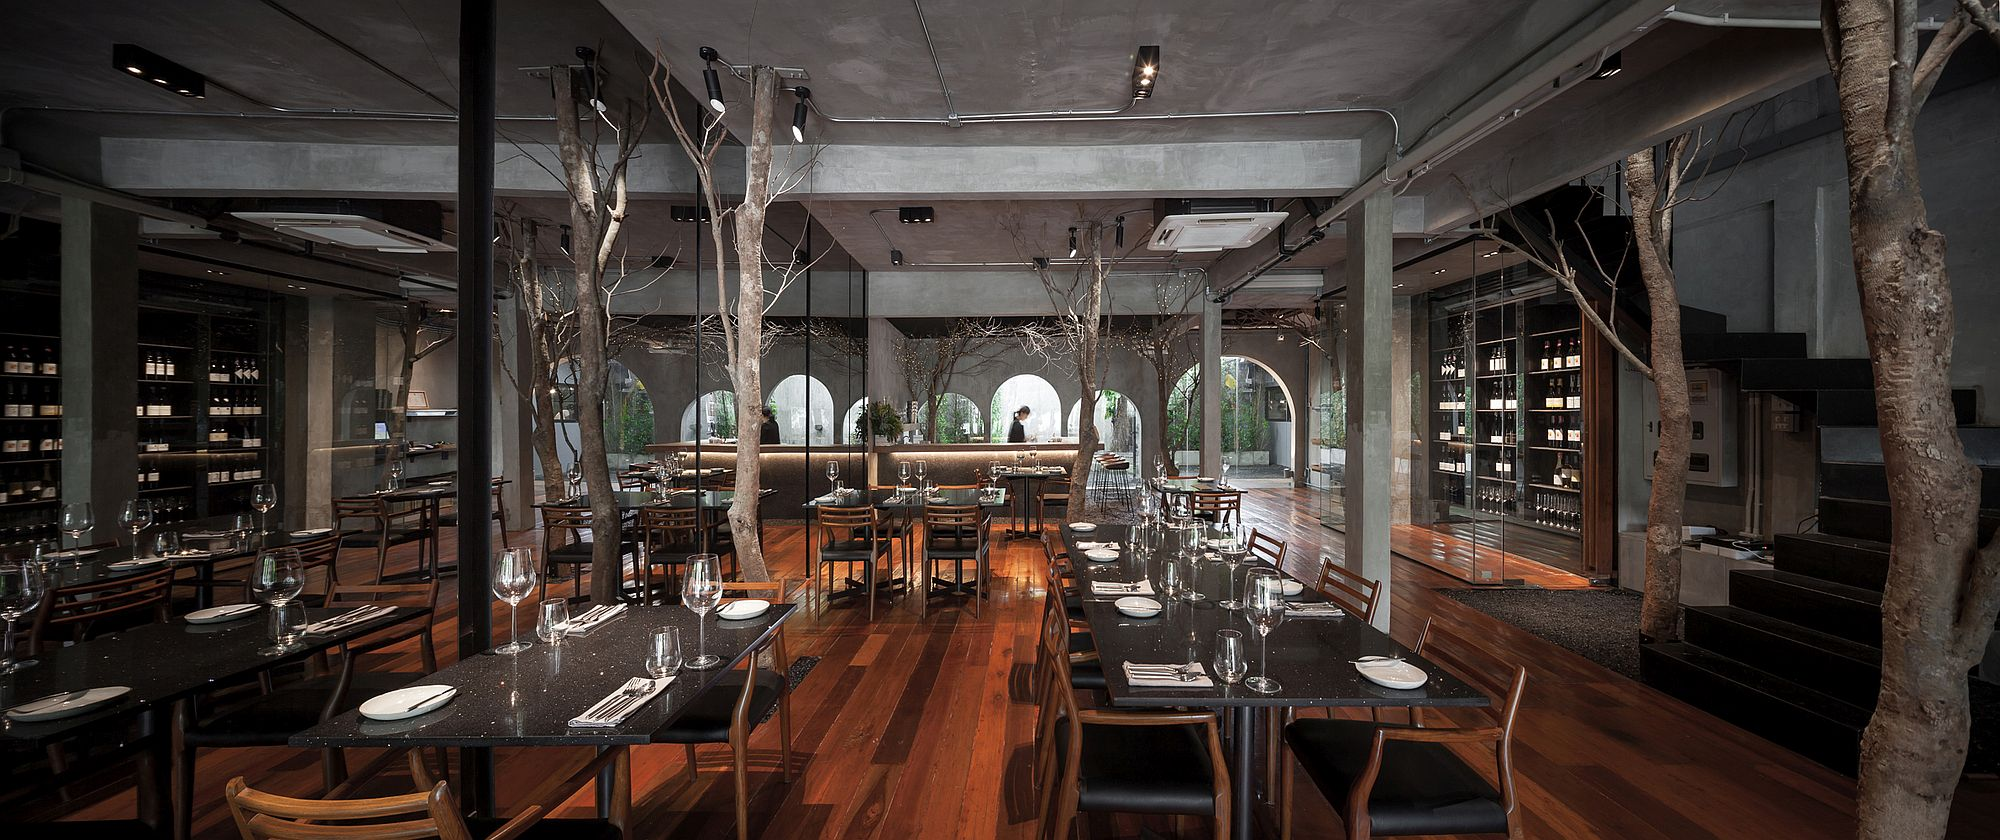 Randomly placed indoor trees bring nature into this restaurant